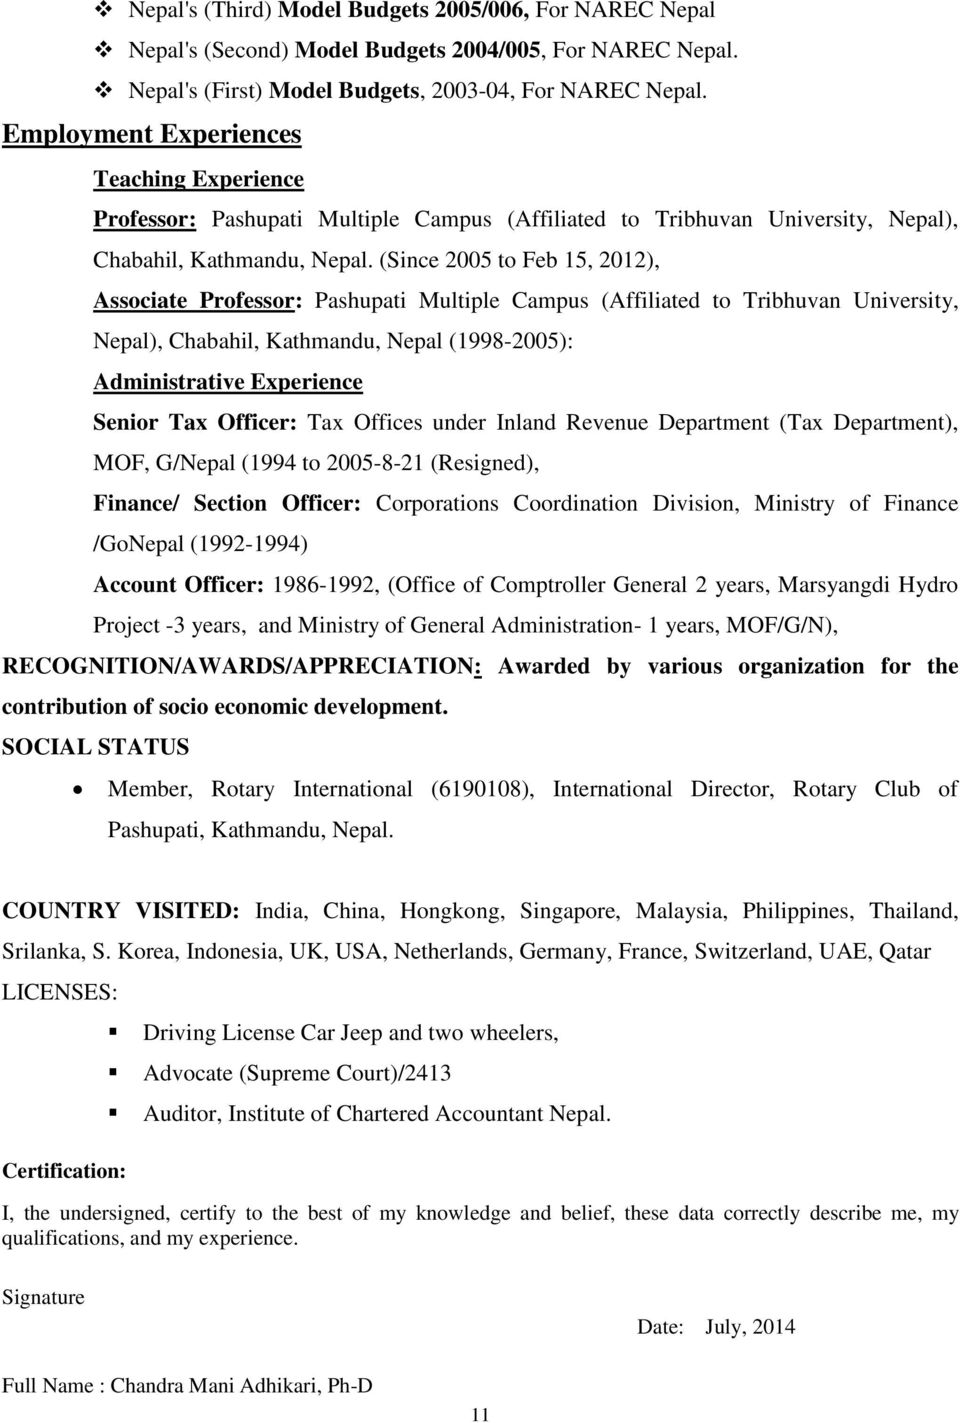 (Since 2005 to Feb 15, 2012), Associate Professor: Pashupati Multiple Campus (Affiliated to Tribhuvan University, Nepal), Chabahil, Kathmandu, Nepal (1998-2005): Administrative Experience Senior Tax